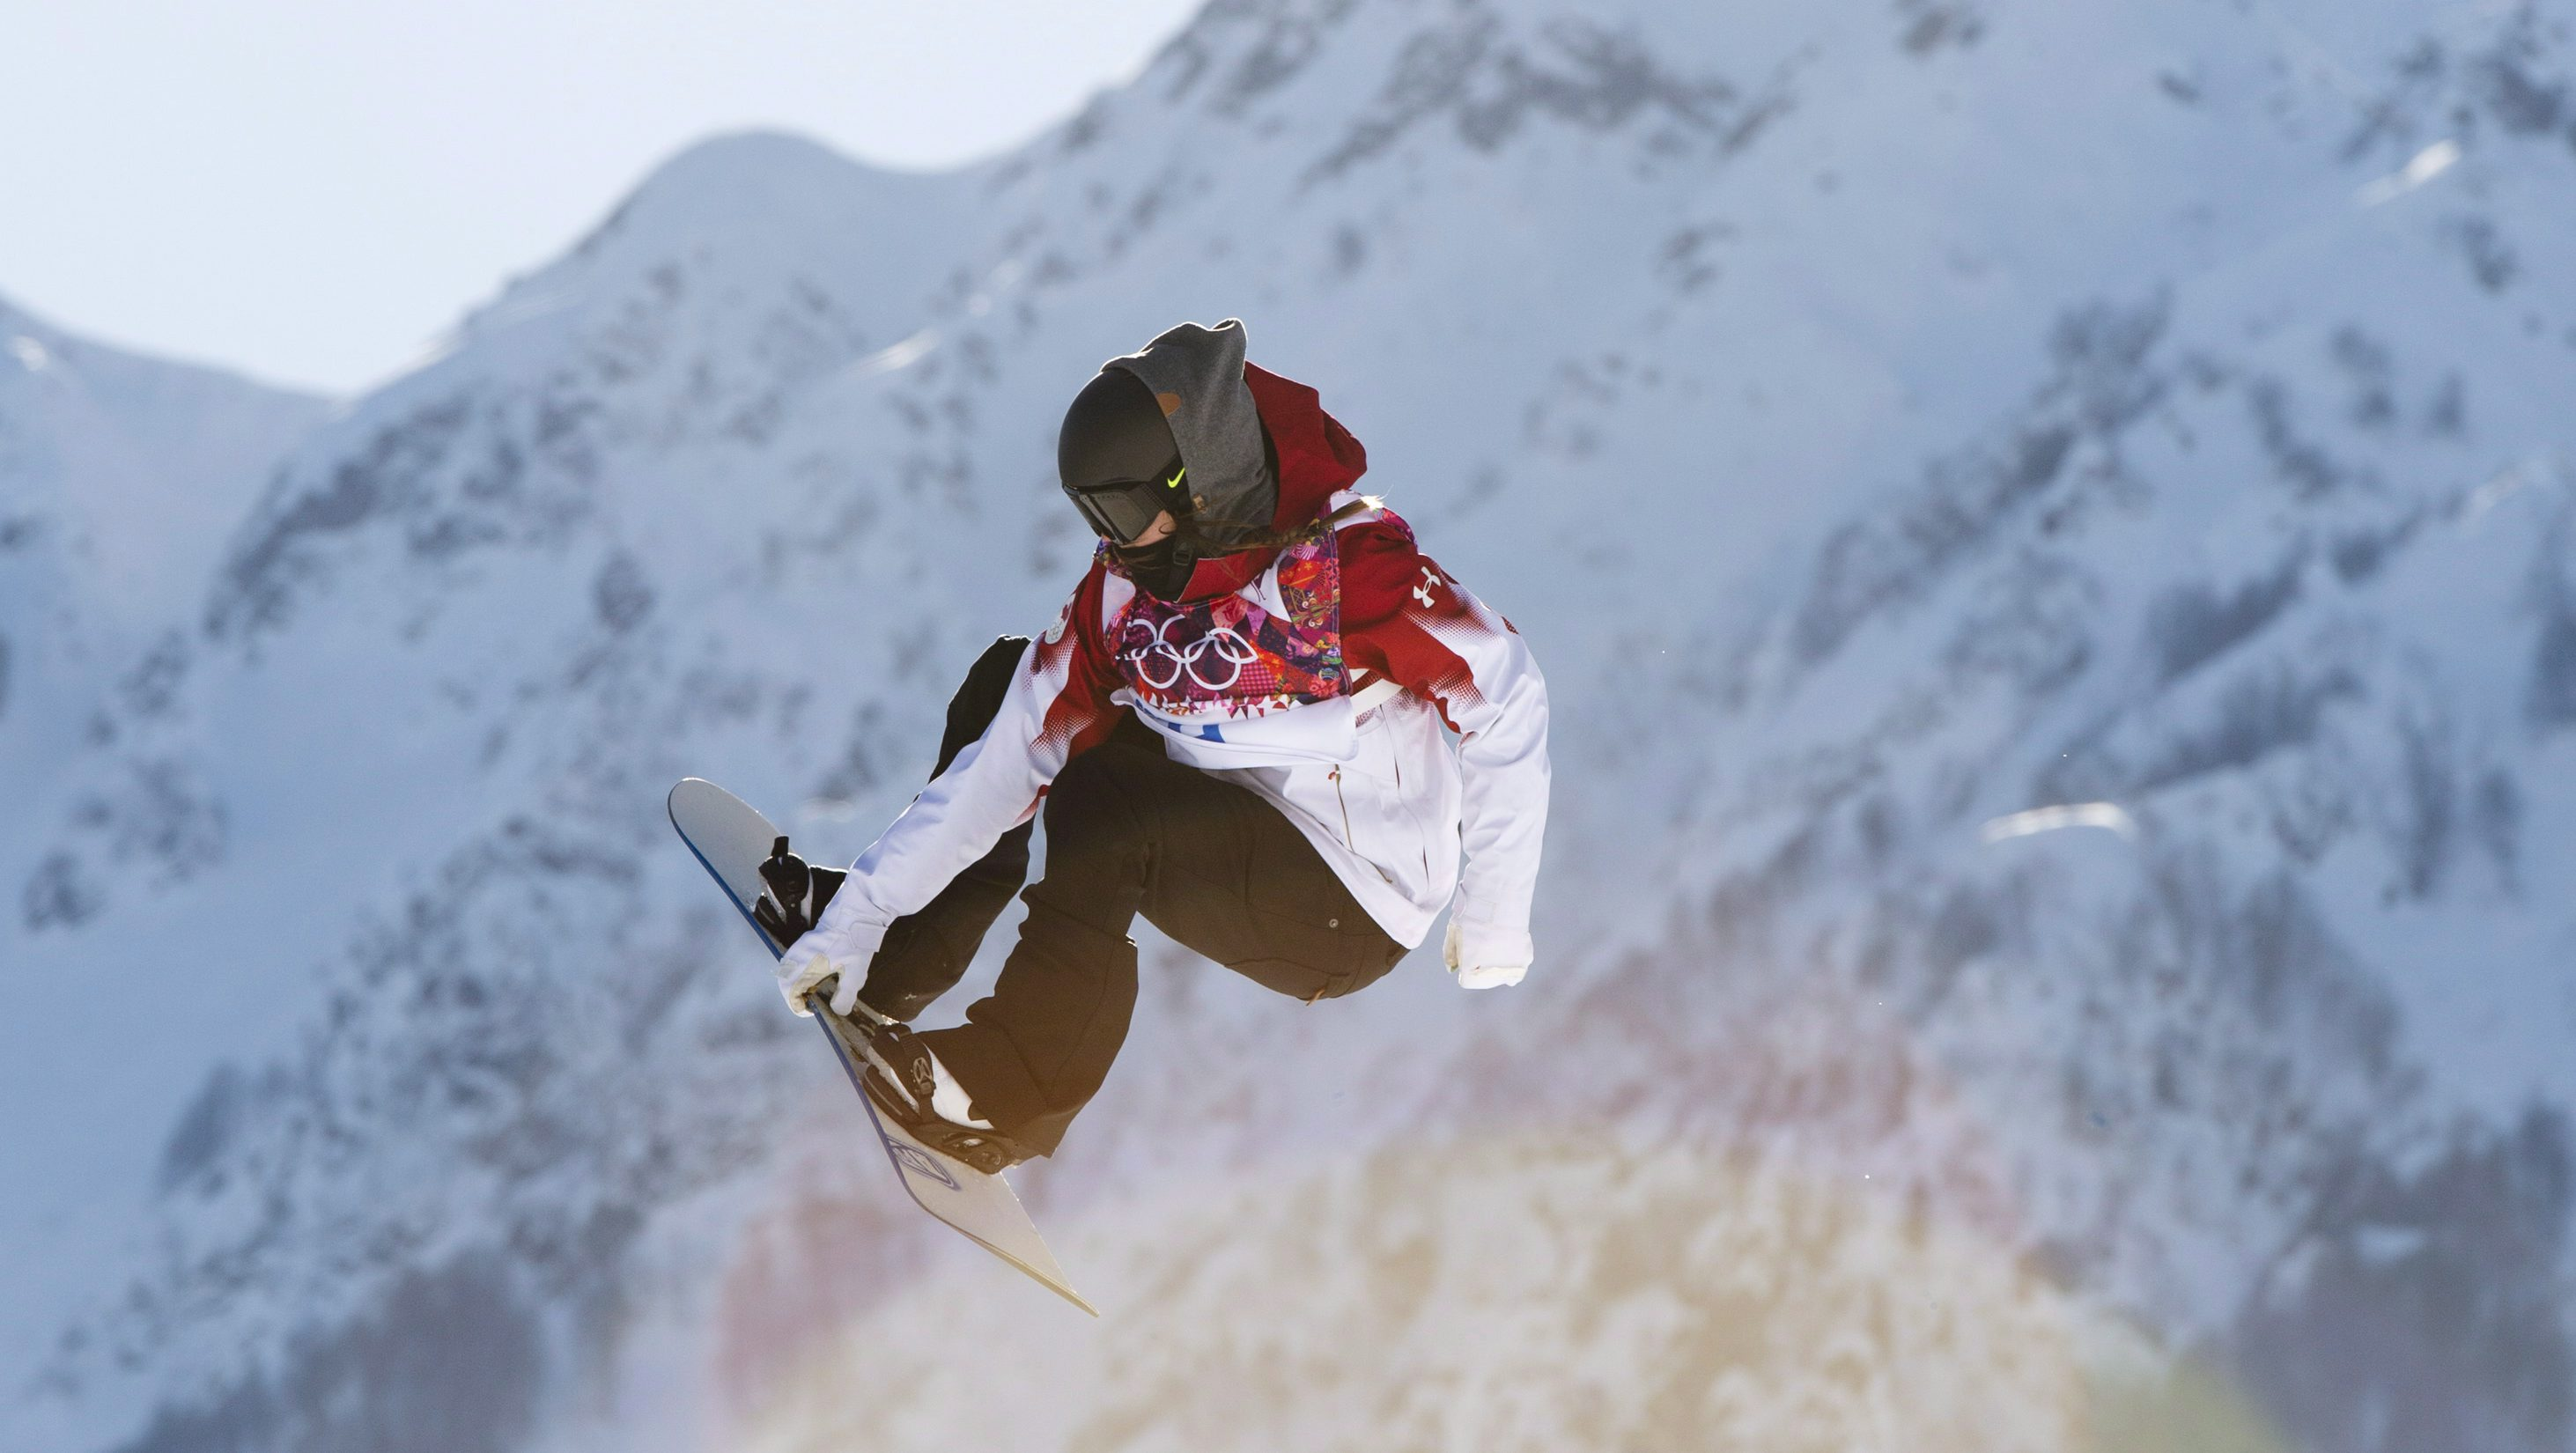 Snowboarder, Spencer O'Brien in the air with mountains in the background.